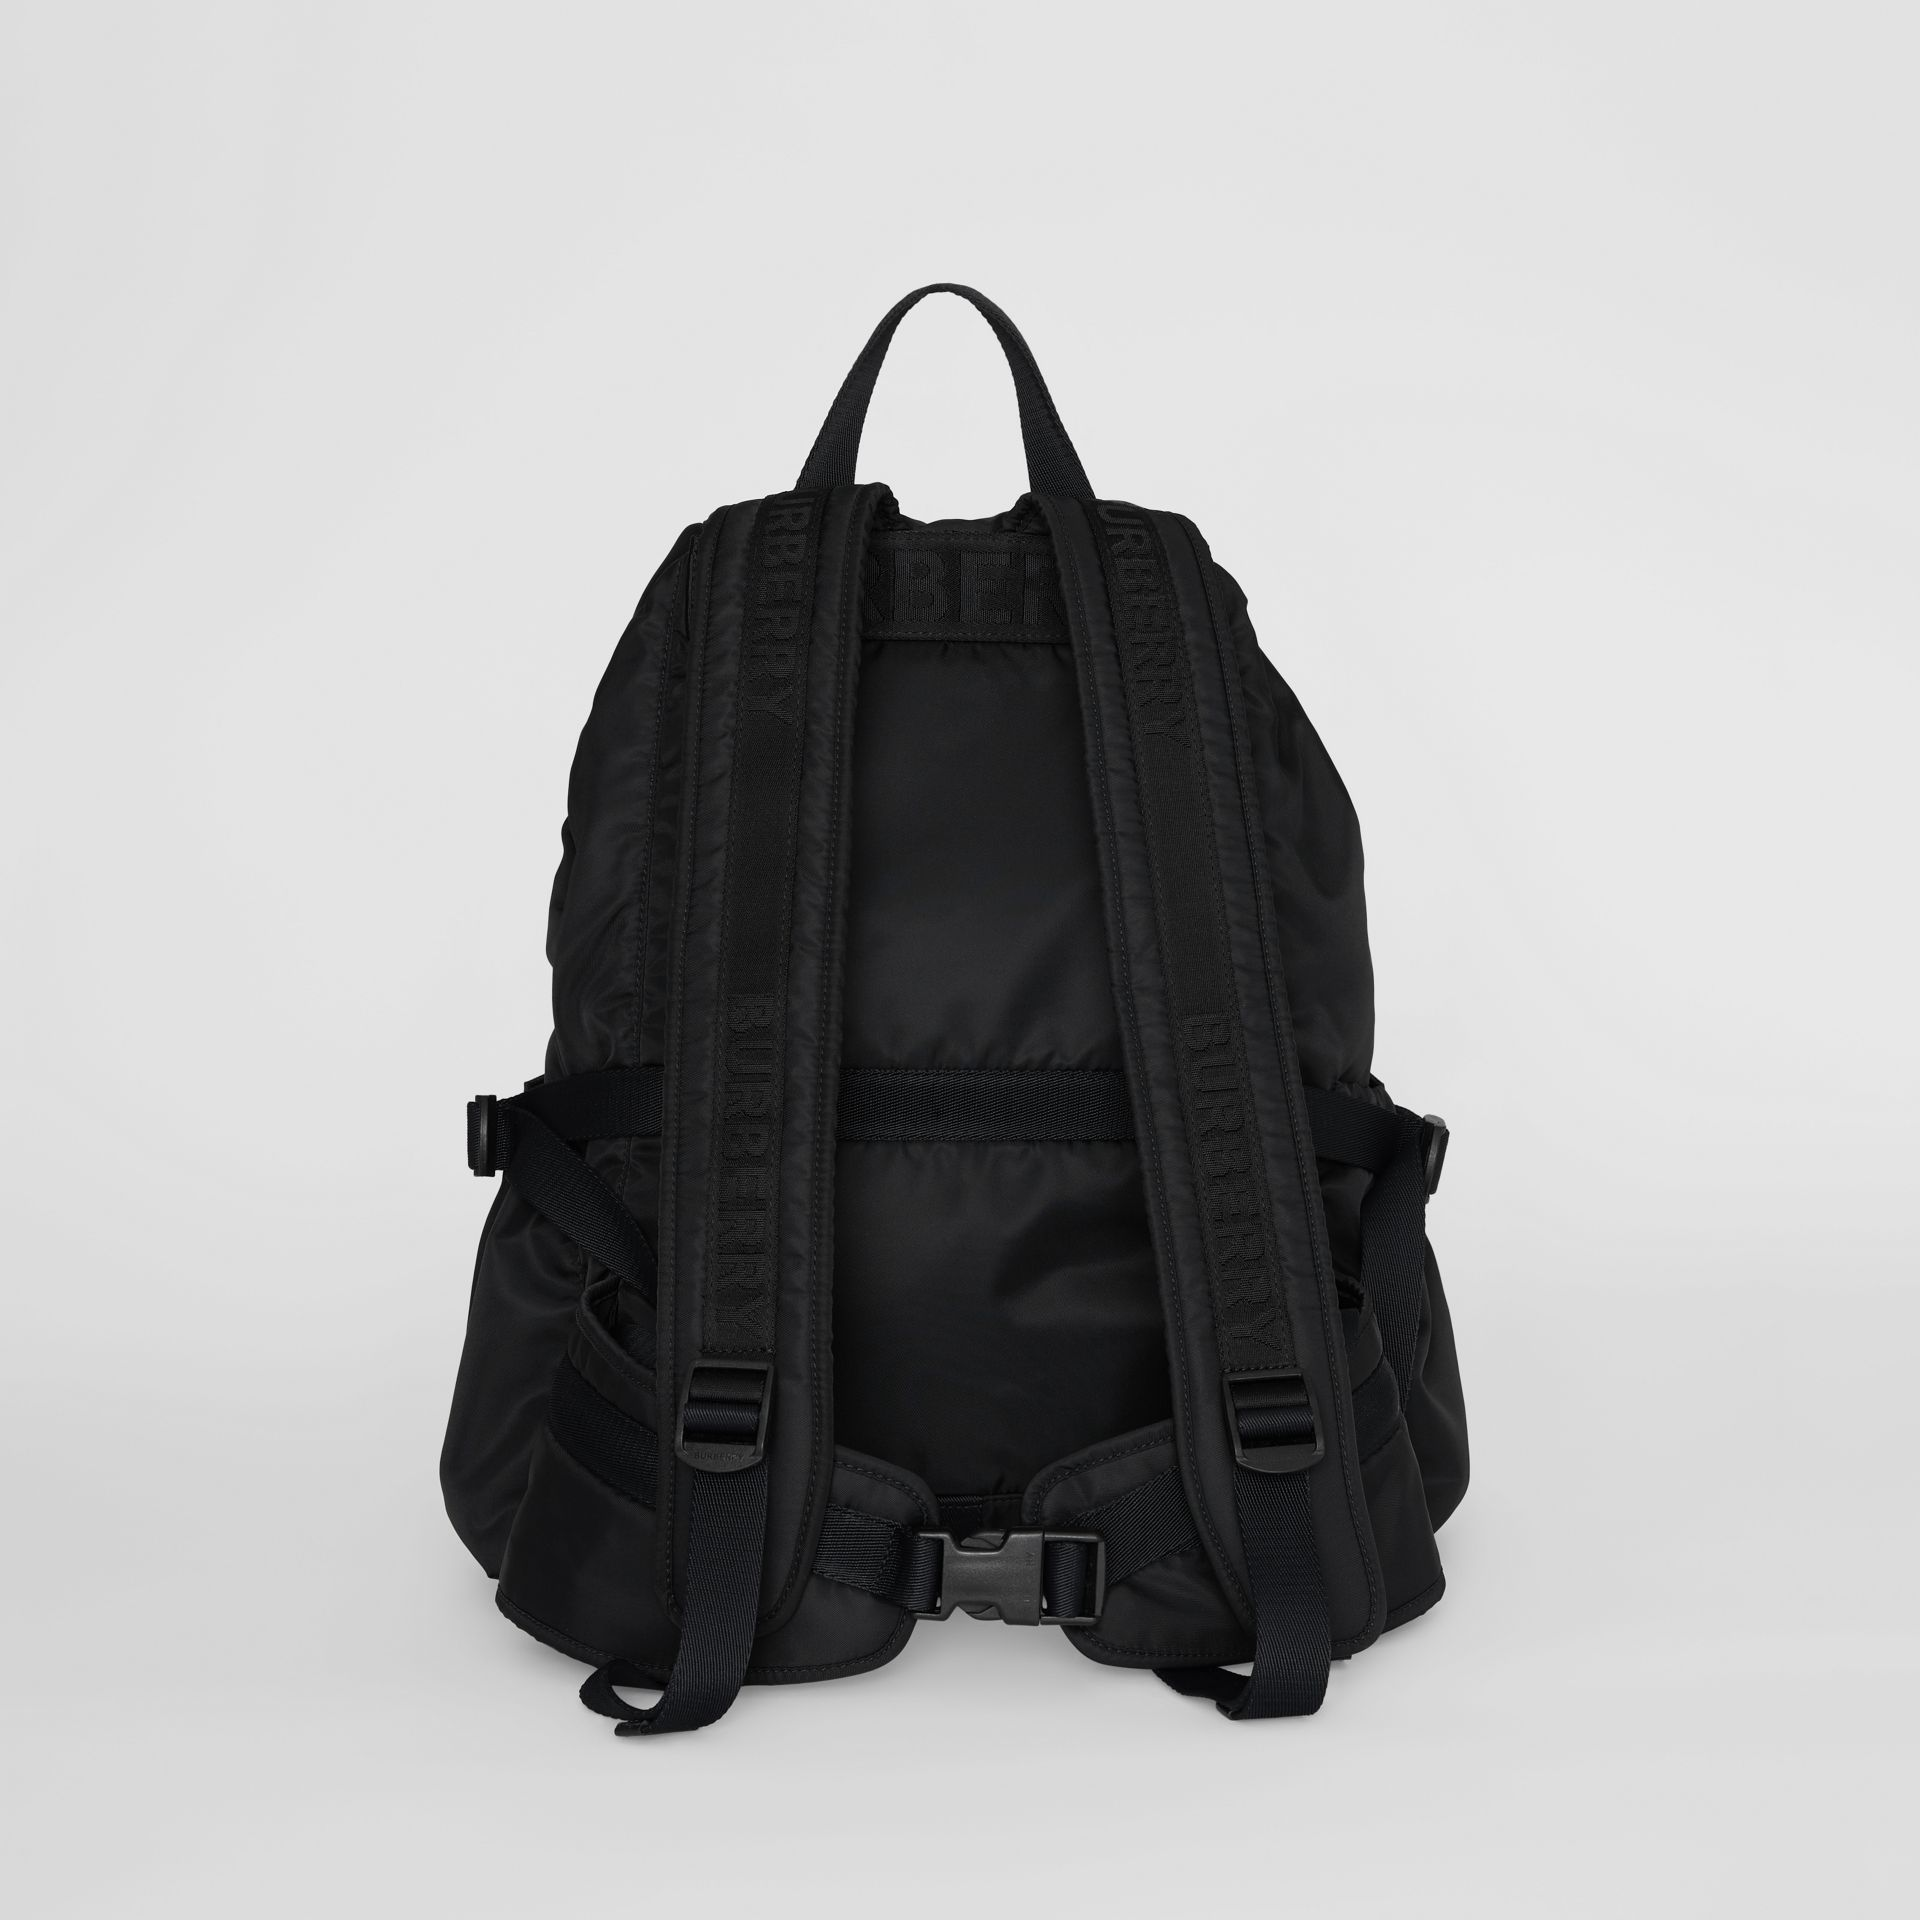 Logo Print Nylon Backpack in Black - Women | Burberry Australia - gallery image 5